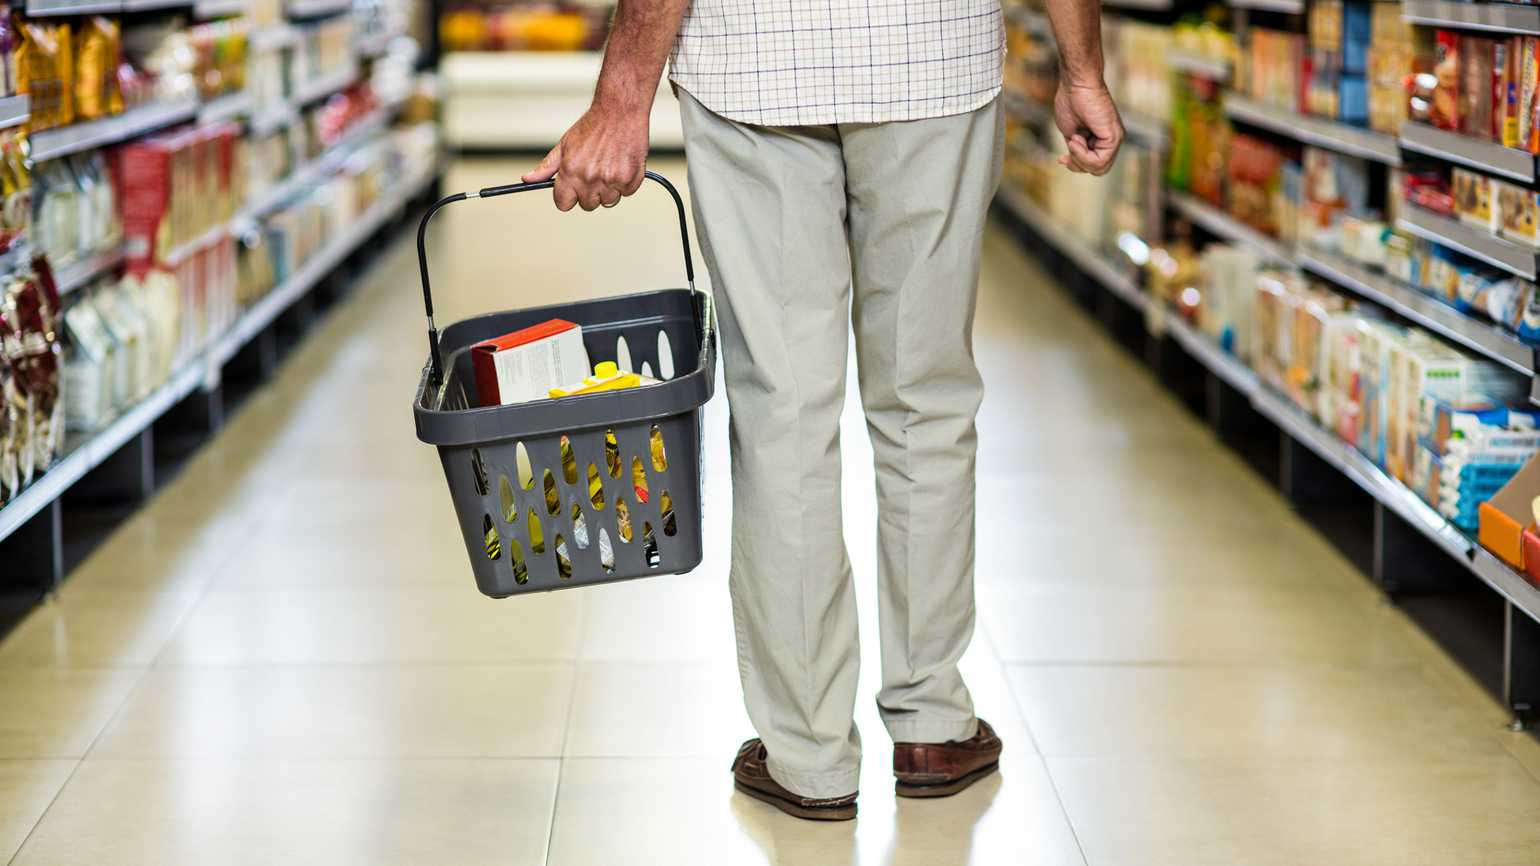 A senior man walking down a grocery aisle with a shopping basket full of items.